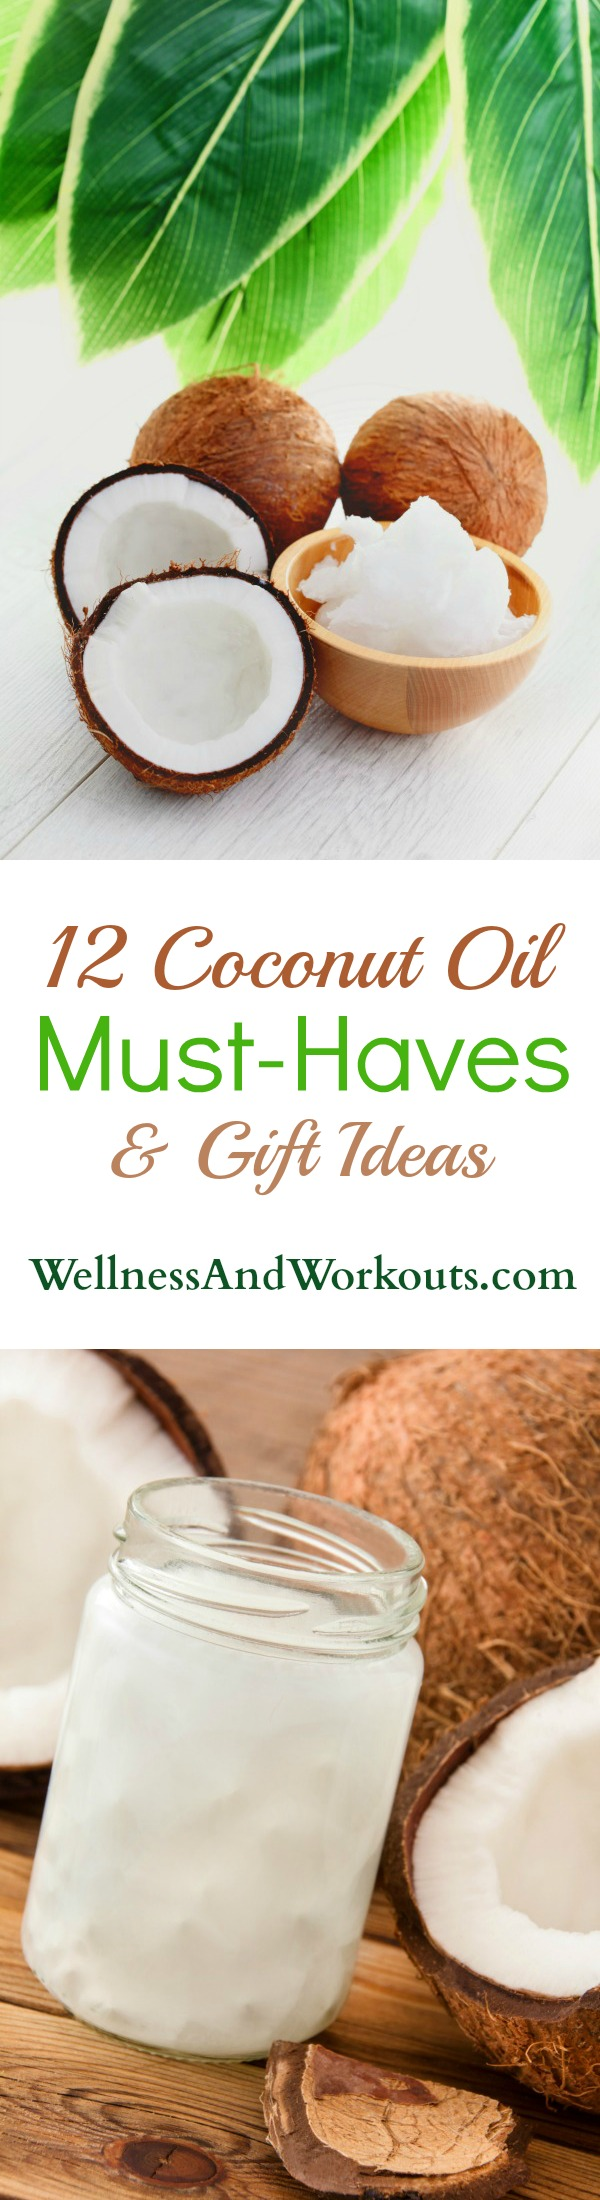 12 coconut oil must haves great gift ideas for the coconut oil lover coconut oil has so many uses for weight loss smoothies diy natural nvjuhfo Images